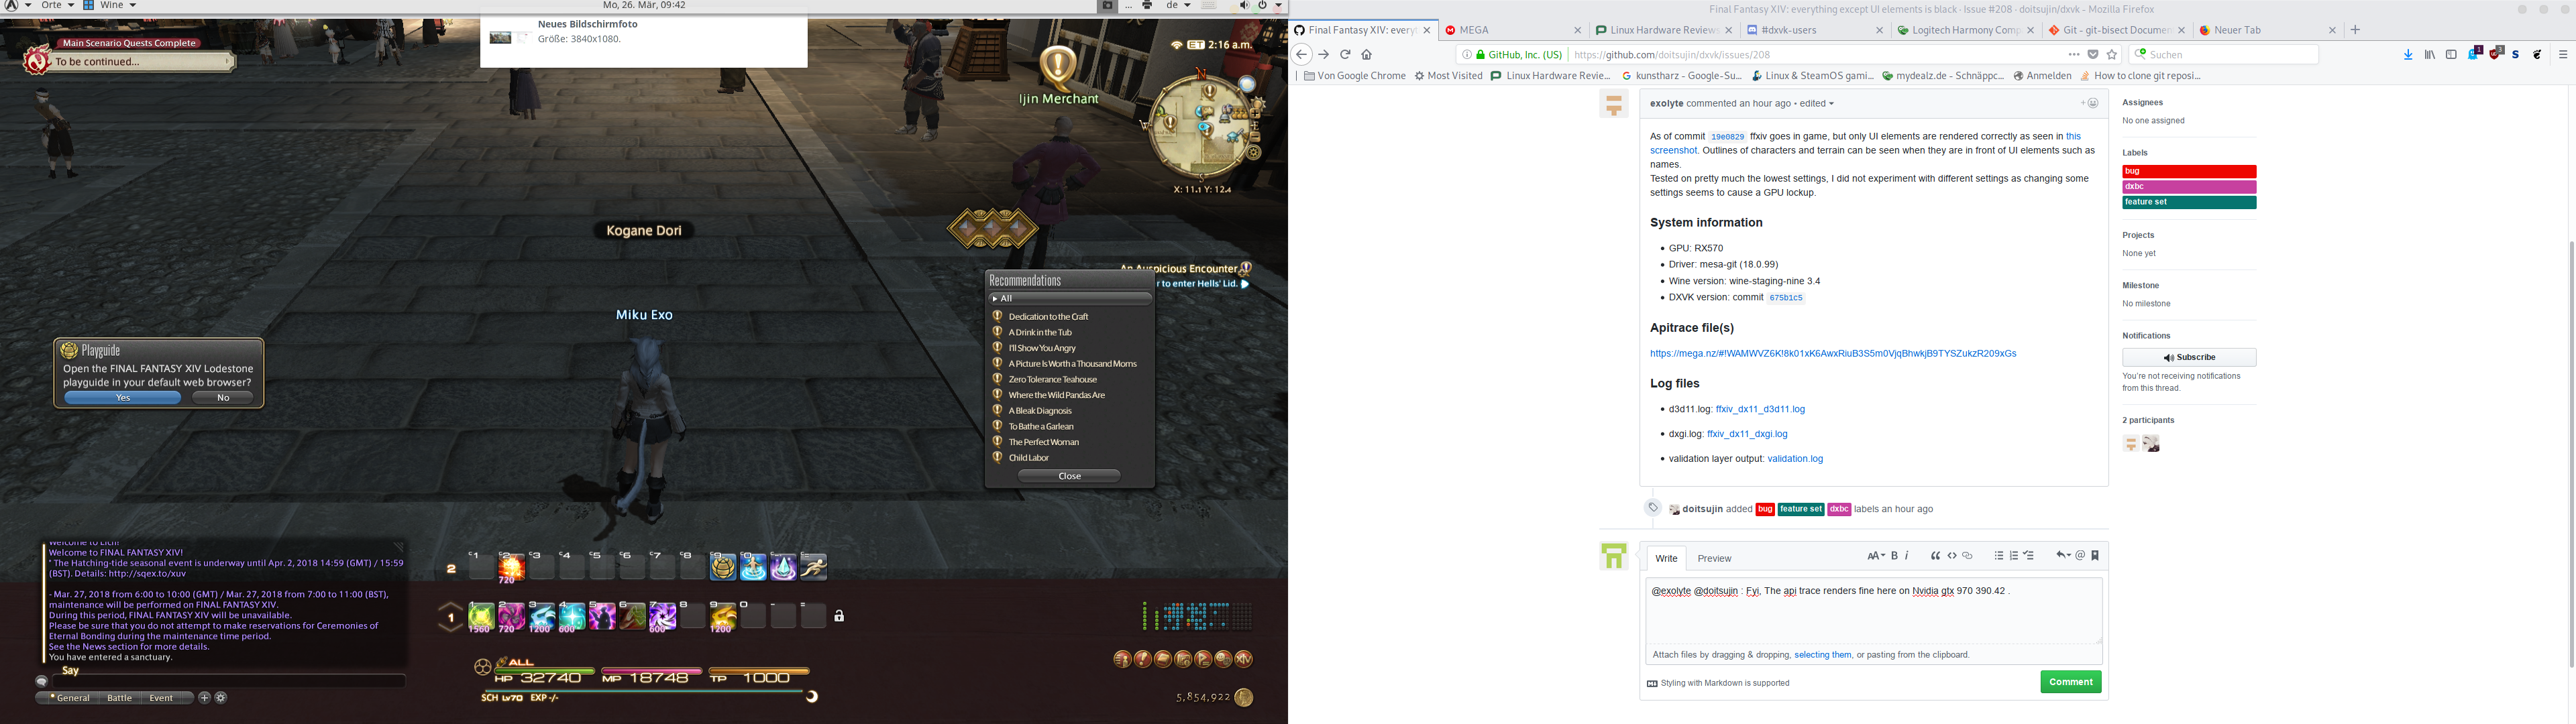 Final Fantasy XIV: everything except UI elements is black · Issue